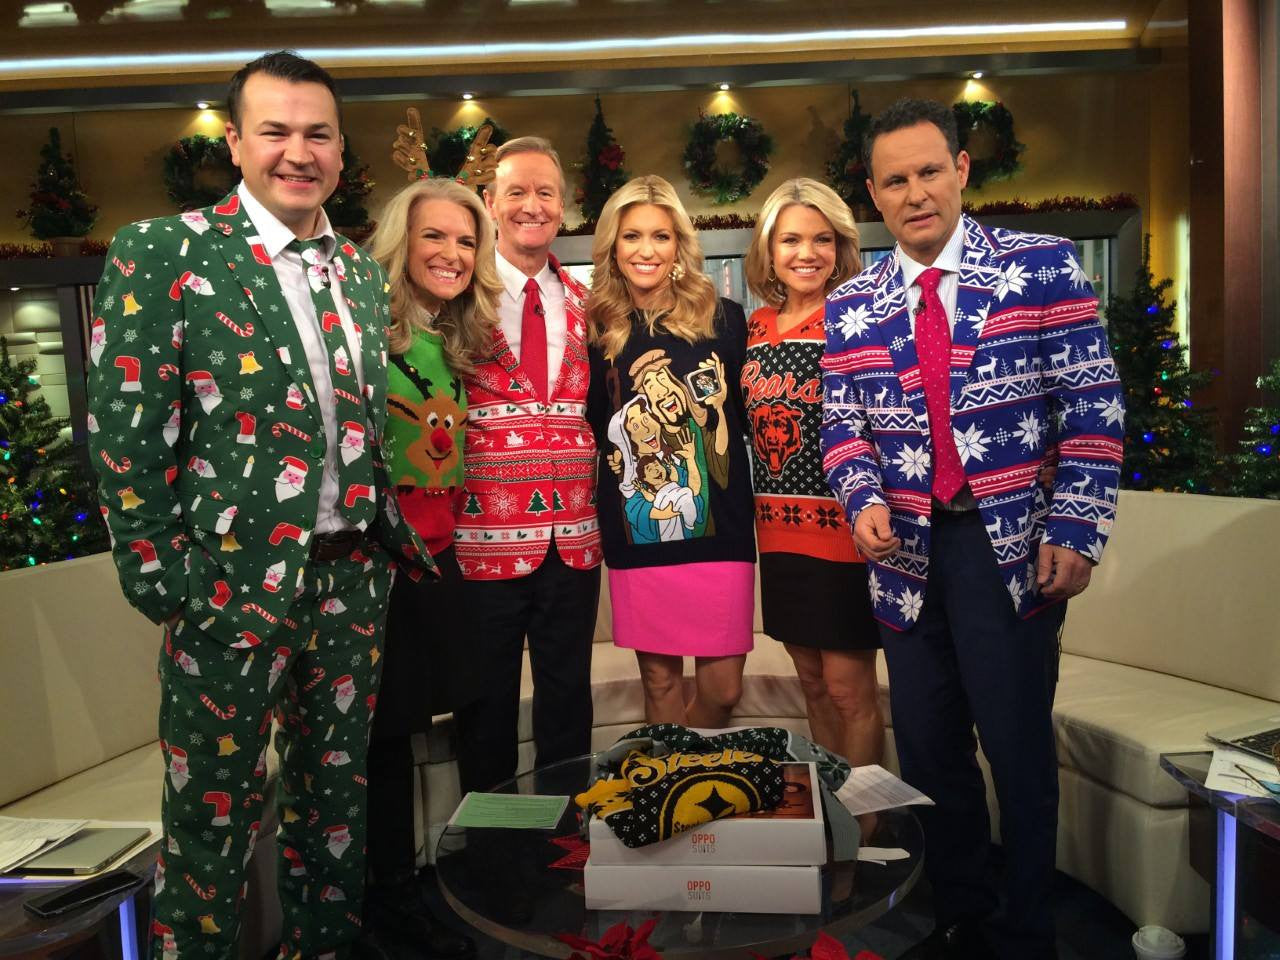 Fox and Friends Show Off Christmas Suits and Sweaters